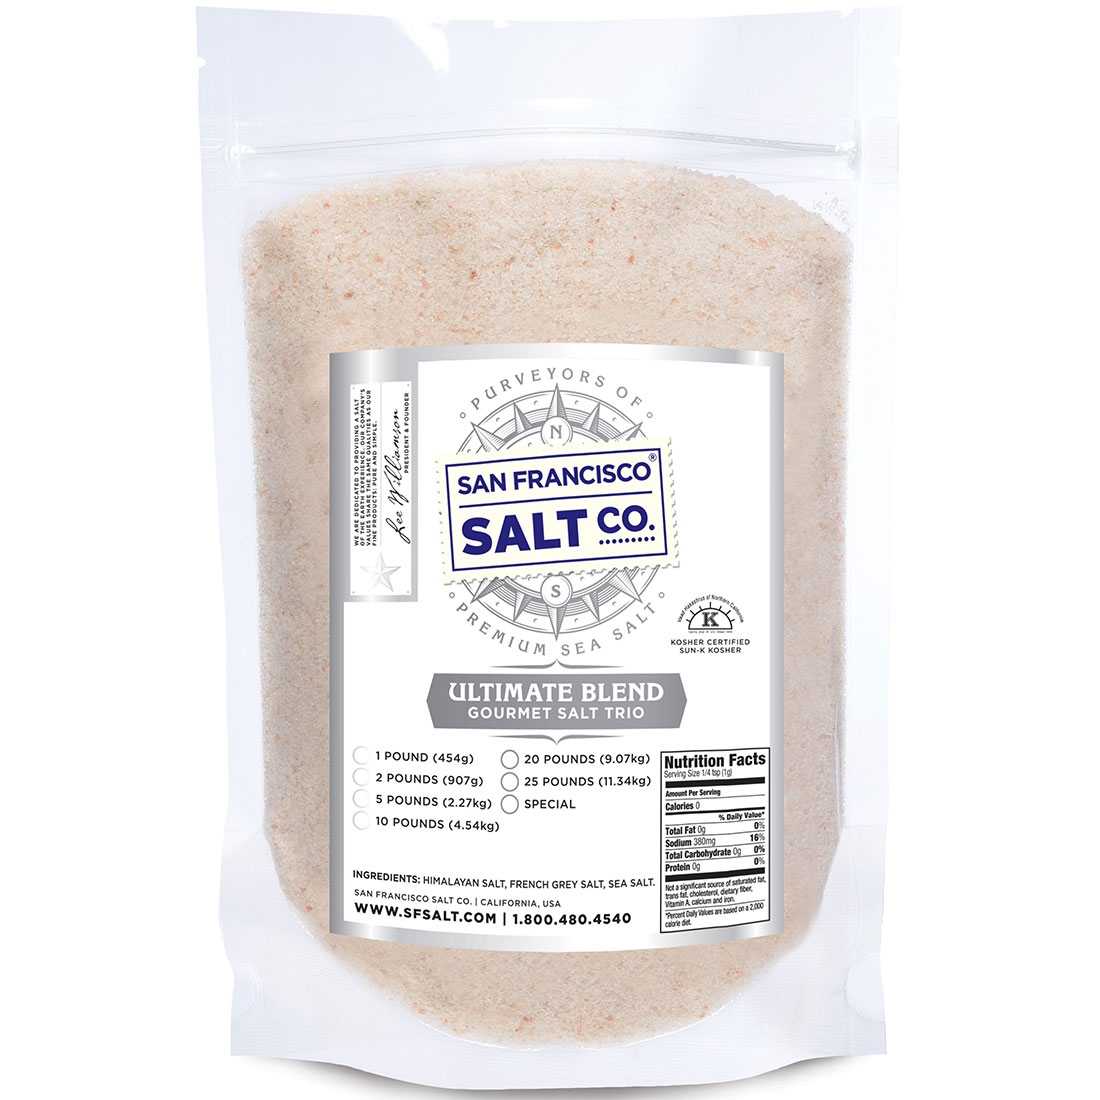 San Francisco Bath Salt Company. San Francisco Bath Salts. San Francisco Salt Company. Agraria San Francisco. Feature Keywords. Essential Oil. Healing. Therapeutic. Aromatherapy. Muscle. Soothing. Coarse. See more; Bath Product Size. Under 5 Ounces. 5 .